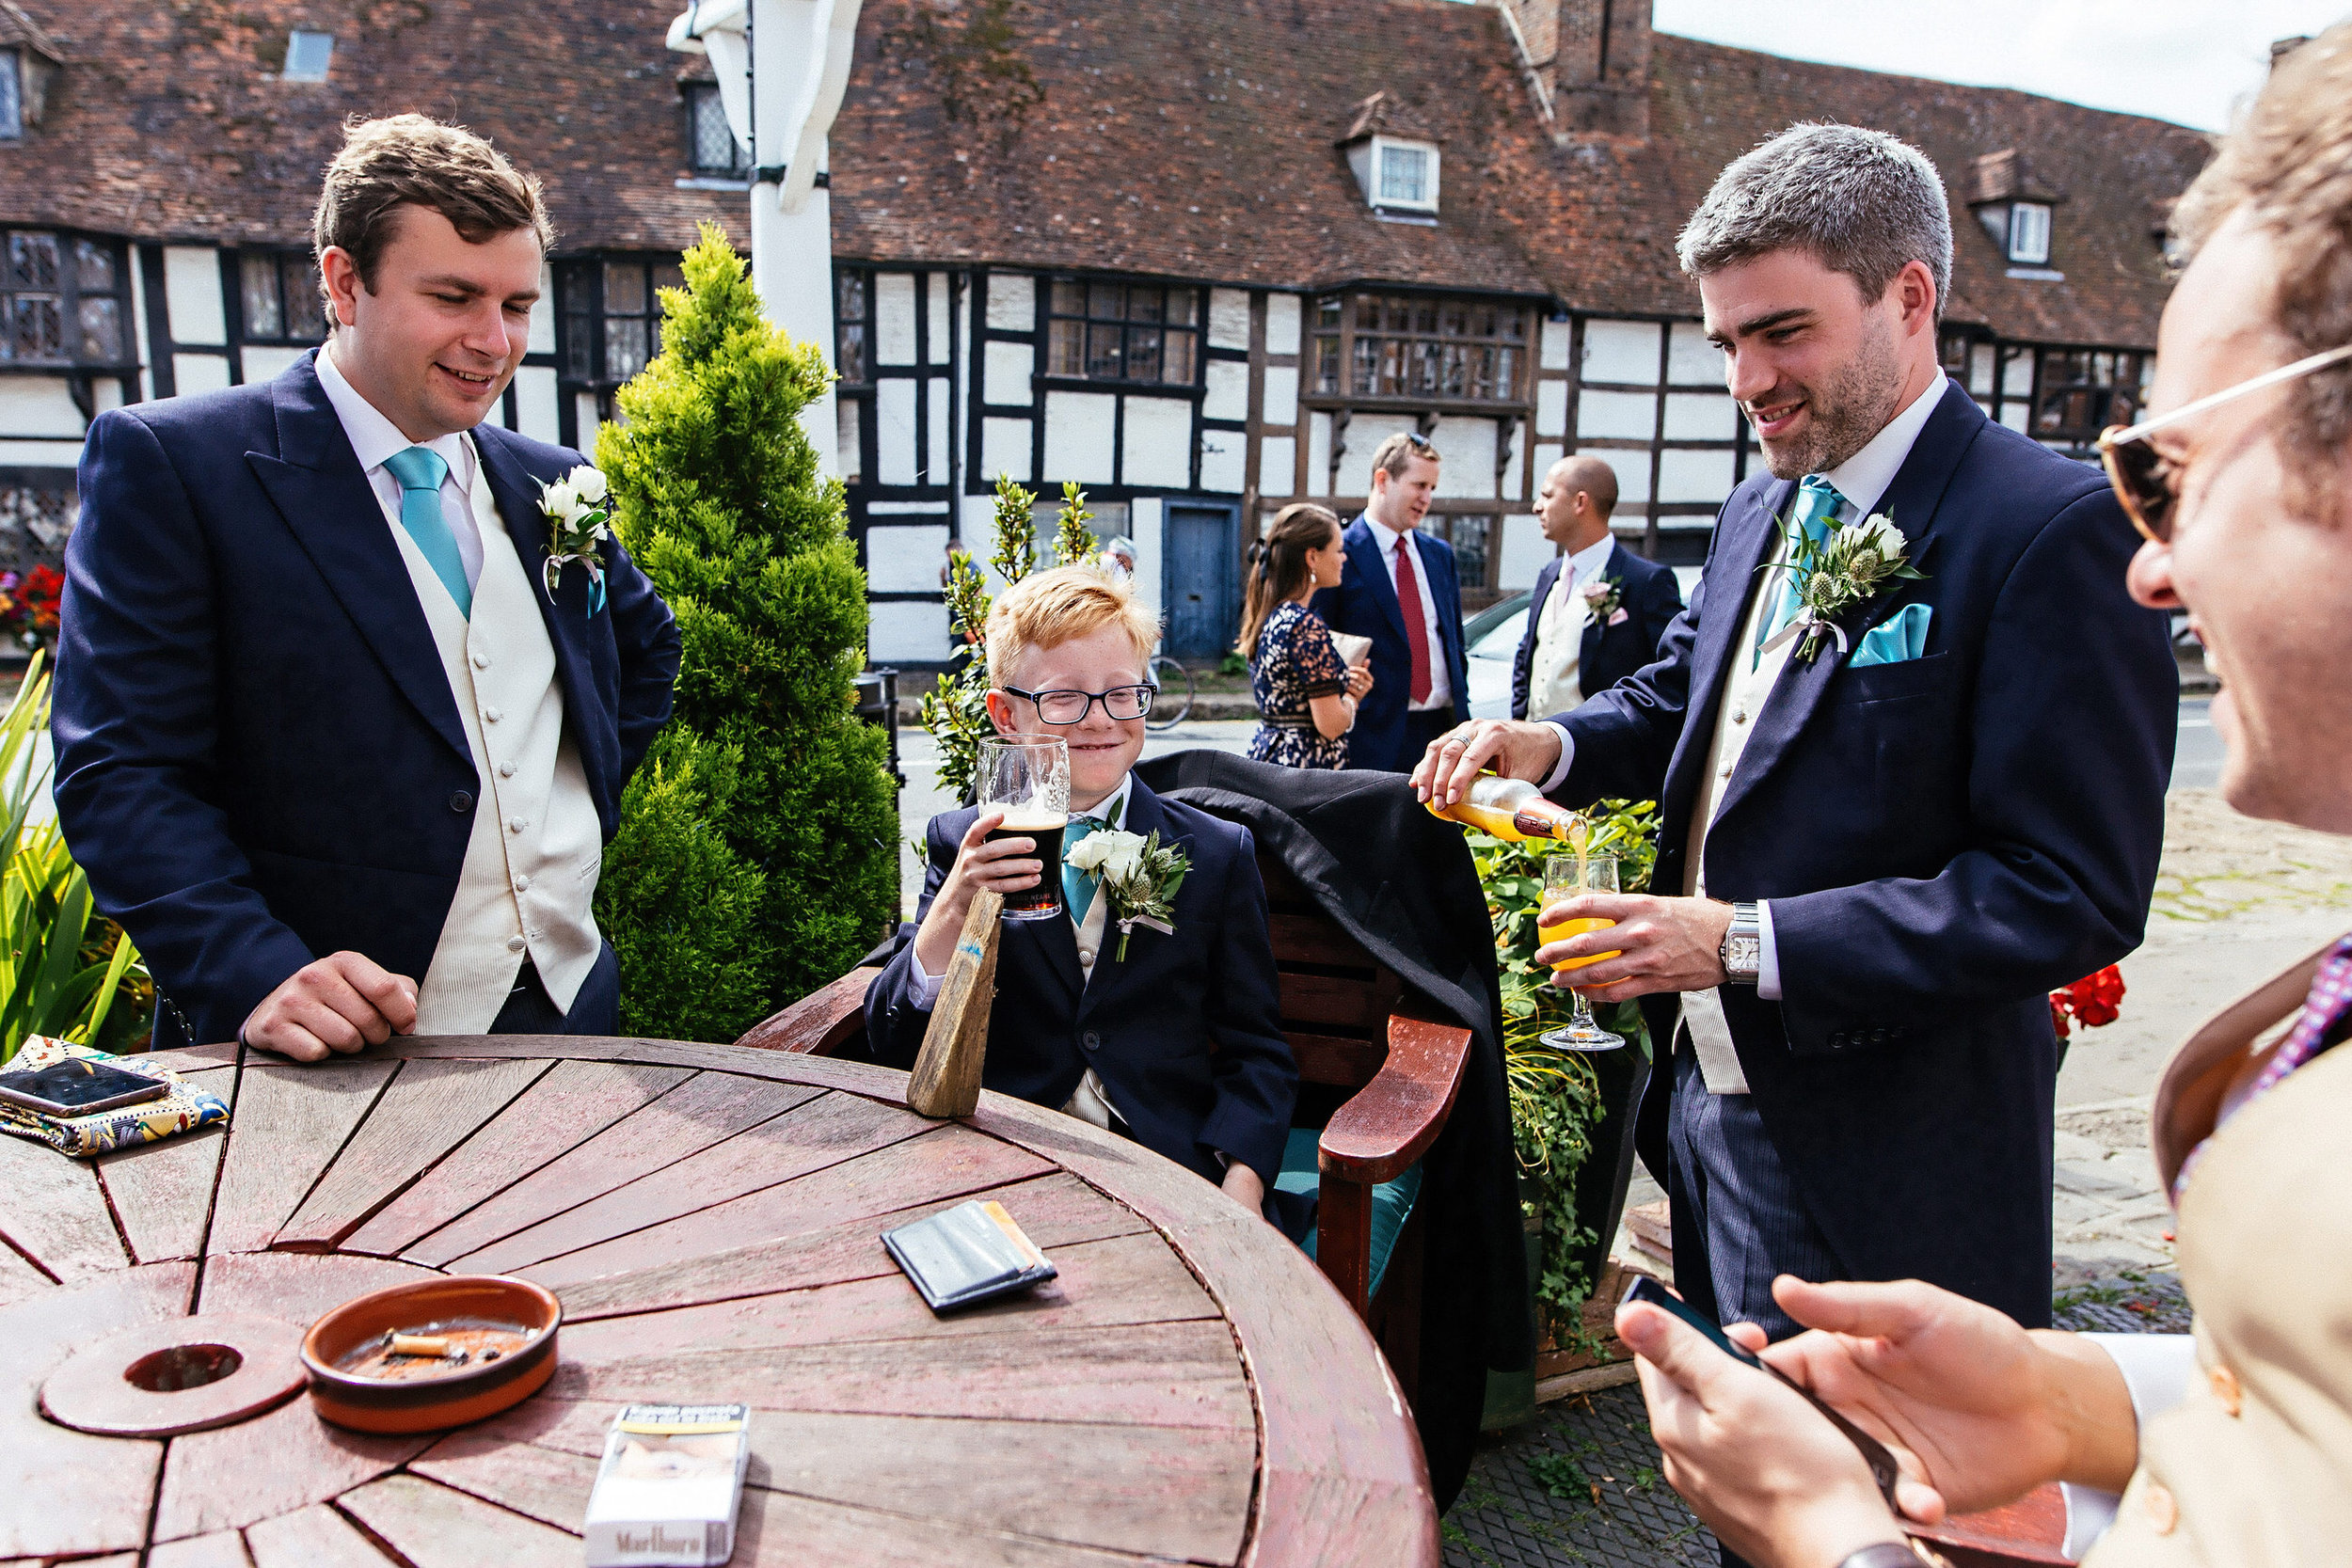 Biddenden Wedding Photographer 0020.jpg